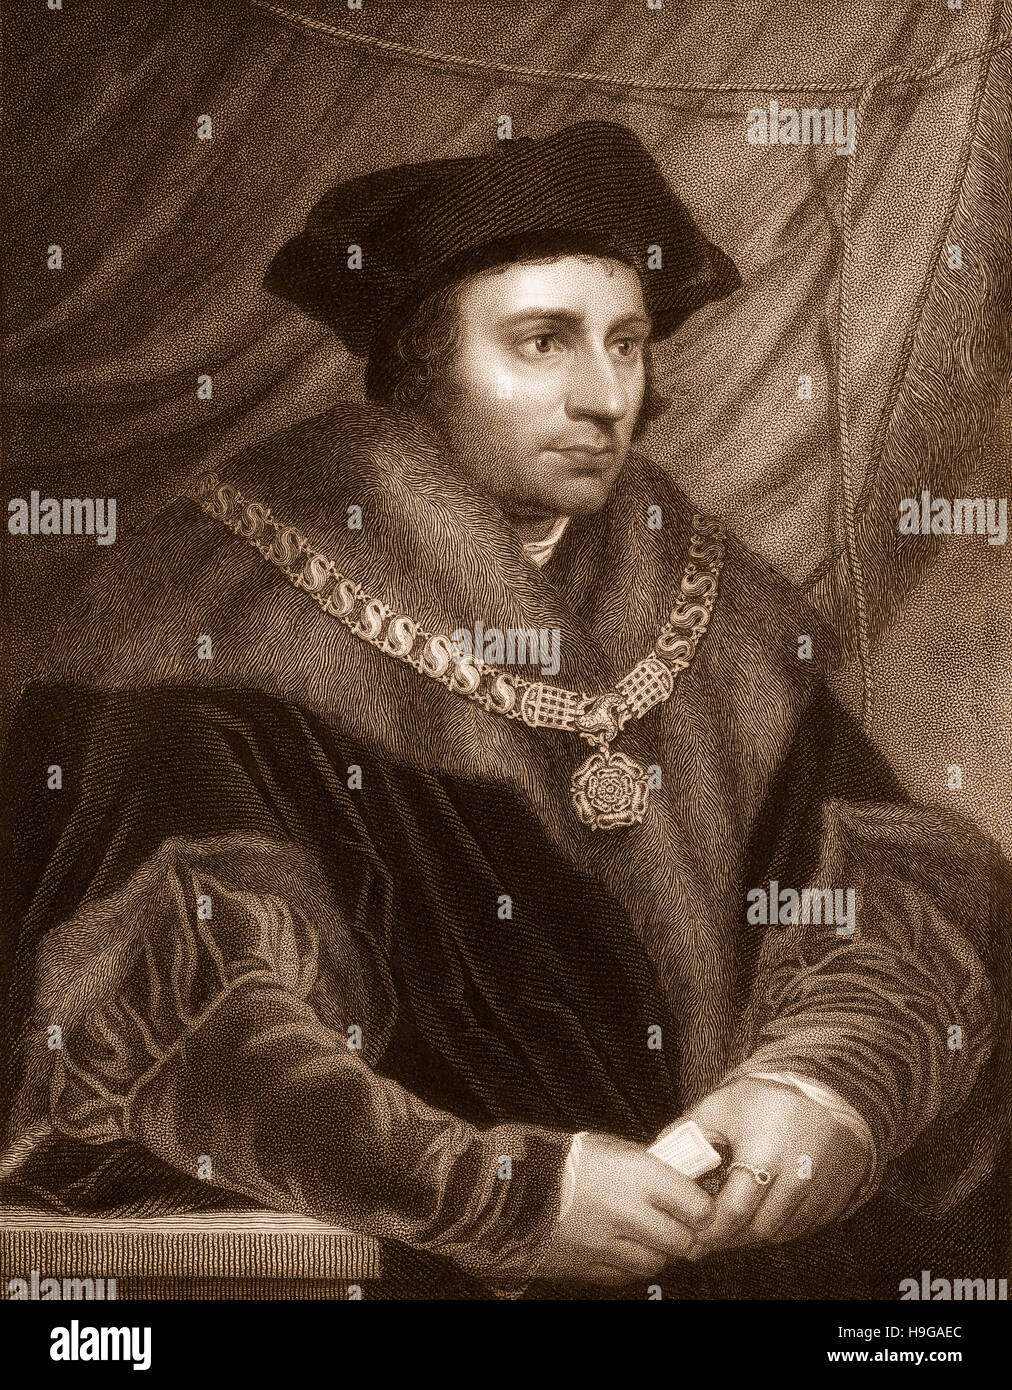 sir thomas more the martyr essay A man for all seasons, a play written by robert bolt, retells the historic events surrounding sir thomas more, the chancellor of england who remained silent regarding henry viii's divorce because more would not take an oath which essentially endorsed the king's separation from the church in.